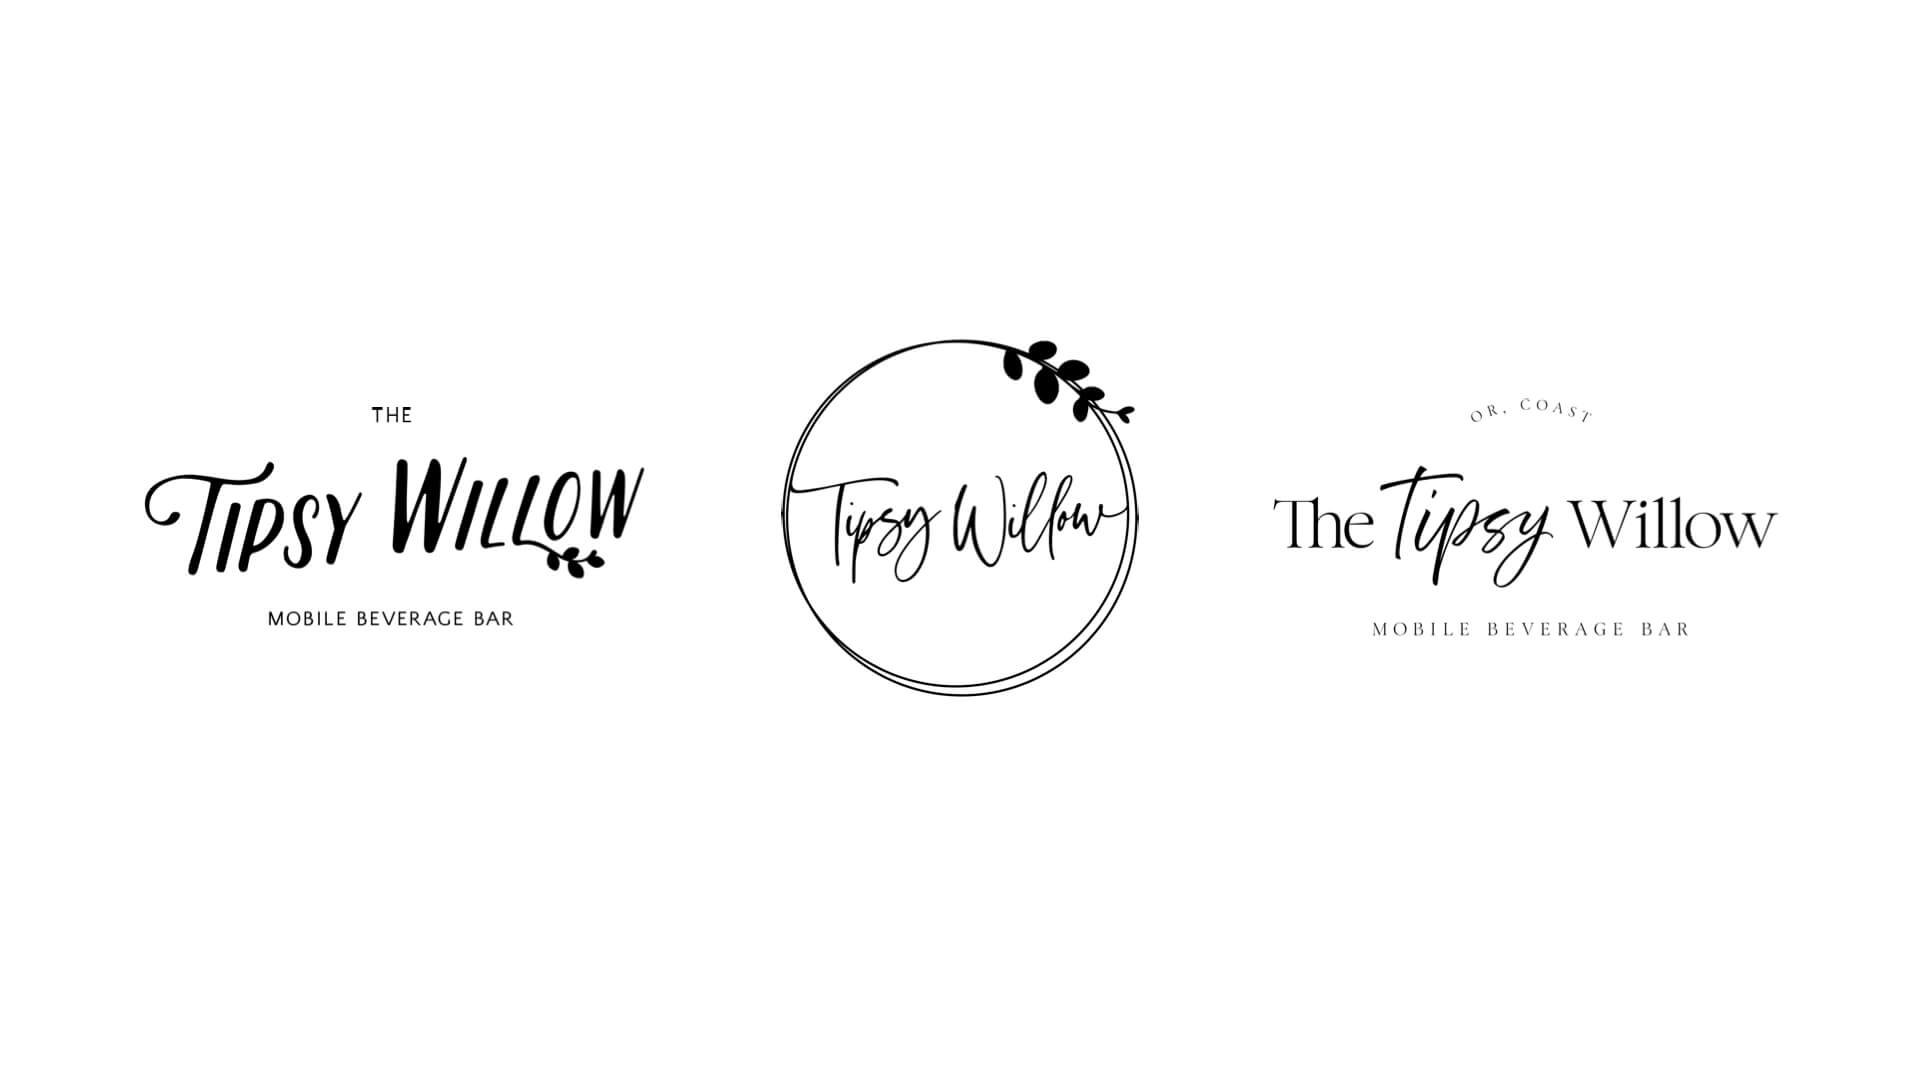 The Tipsy Willow Logo Concepts Comparison